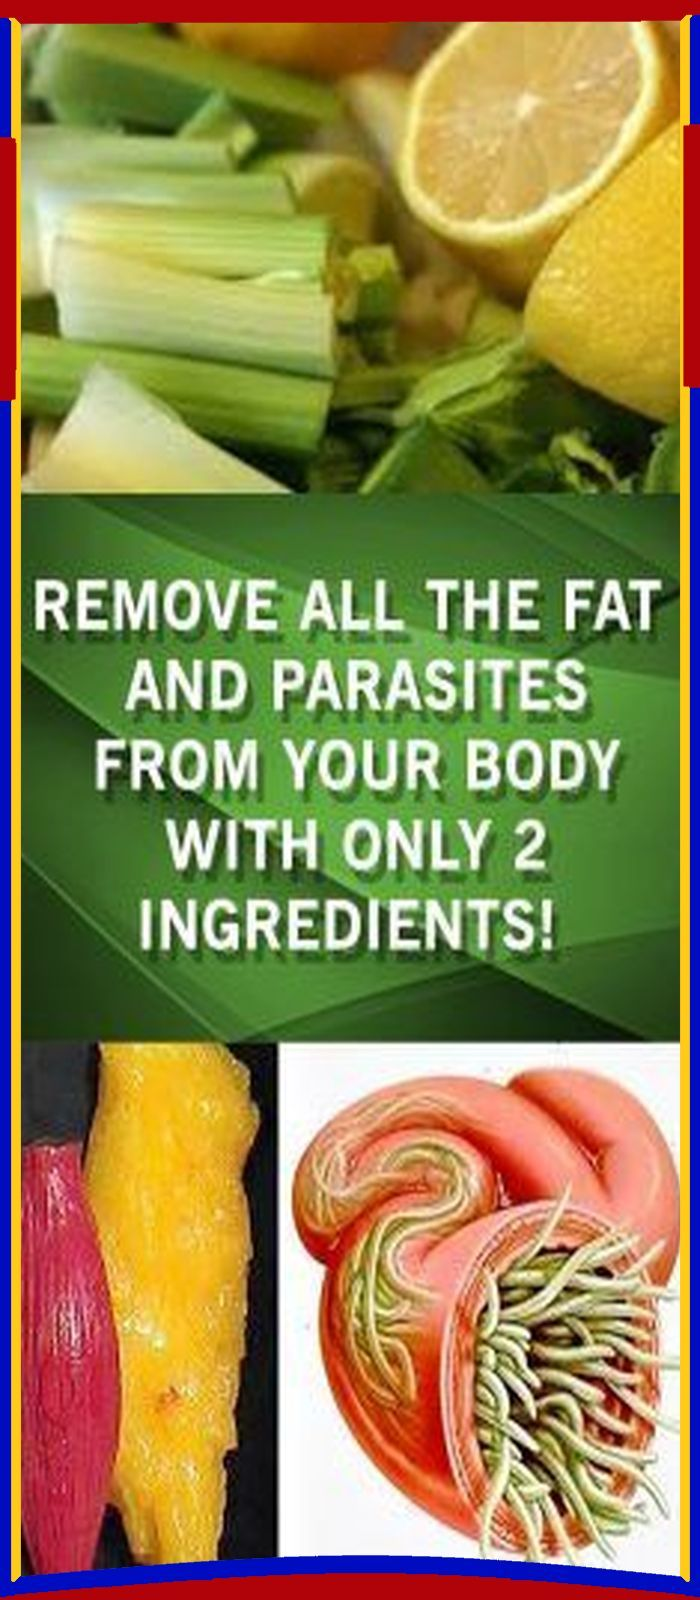 Remove All the FAT and PARASITES from Your Body With Only 2 Ingredients